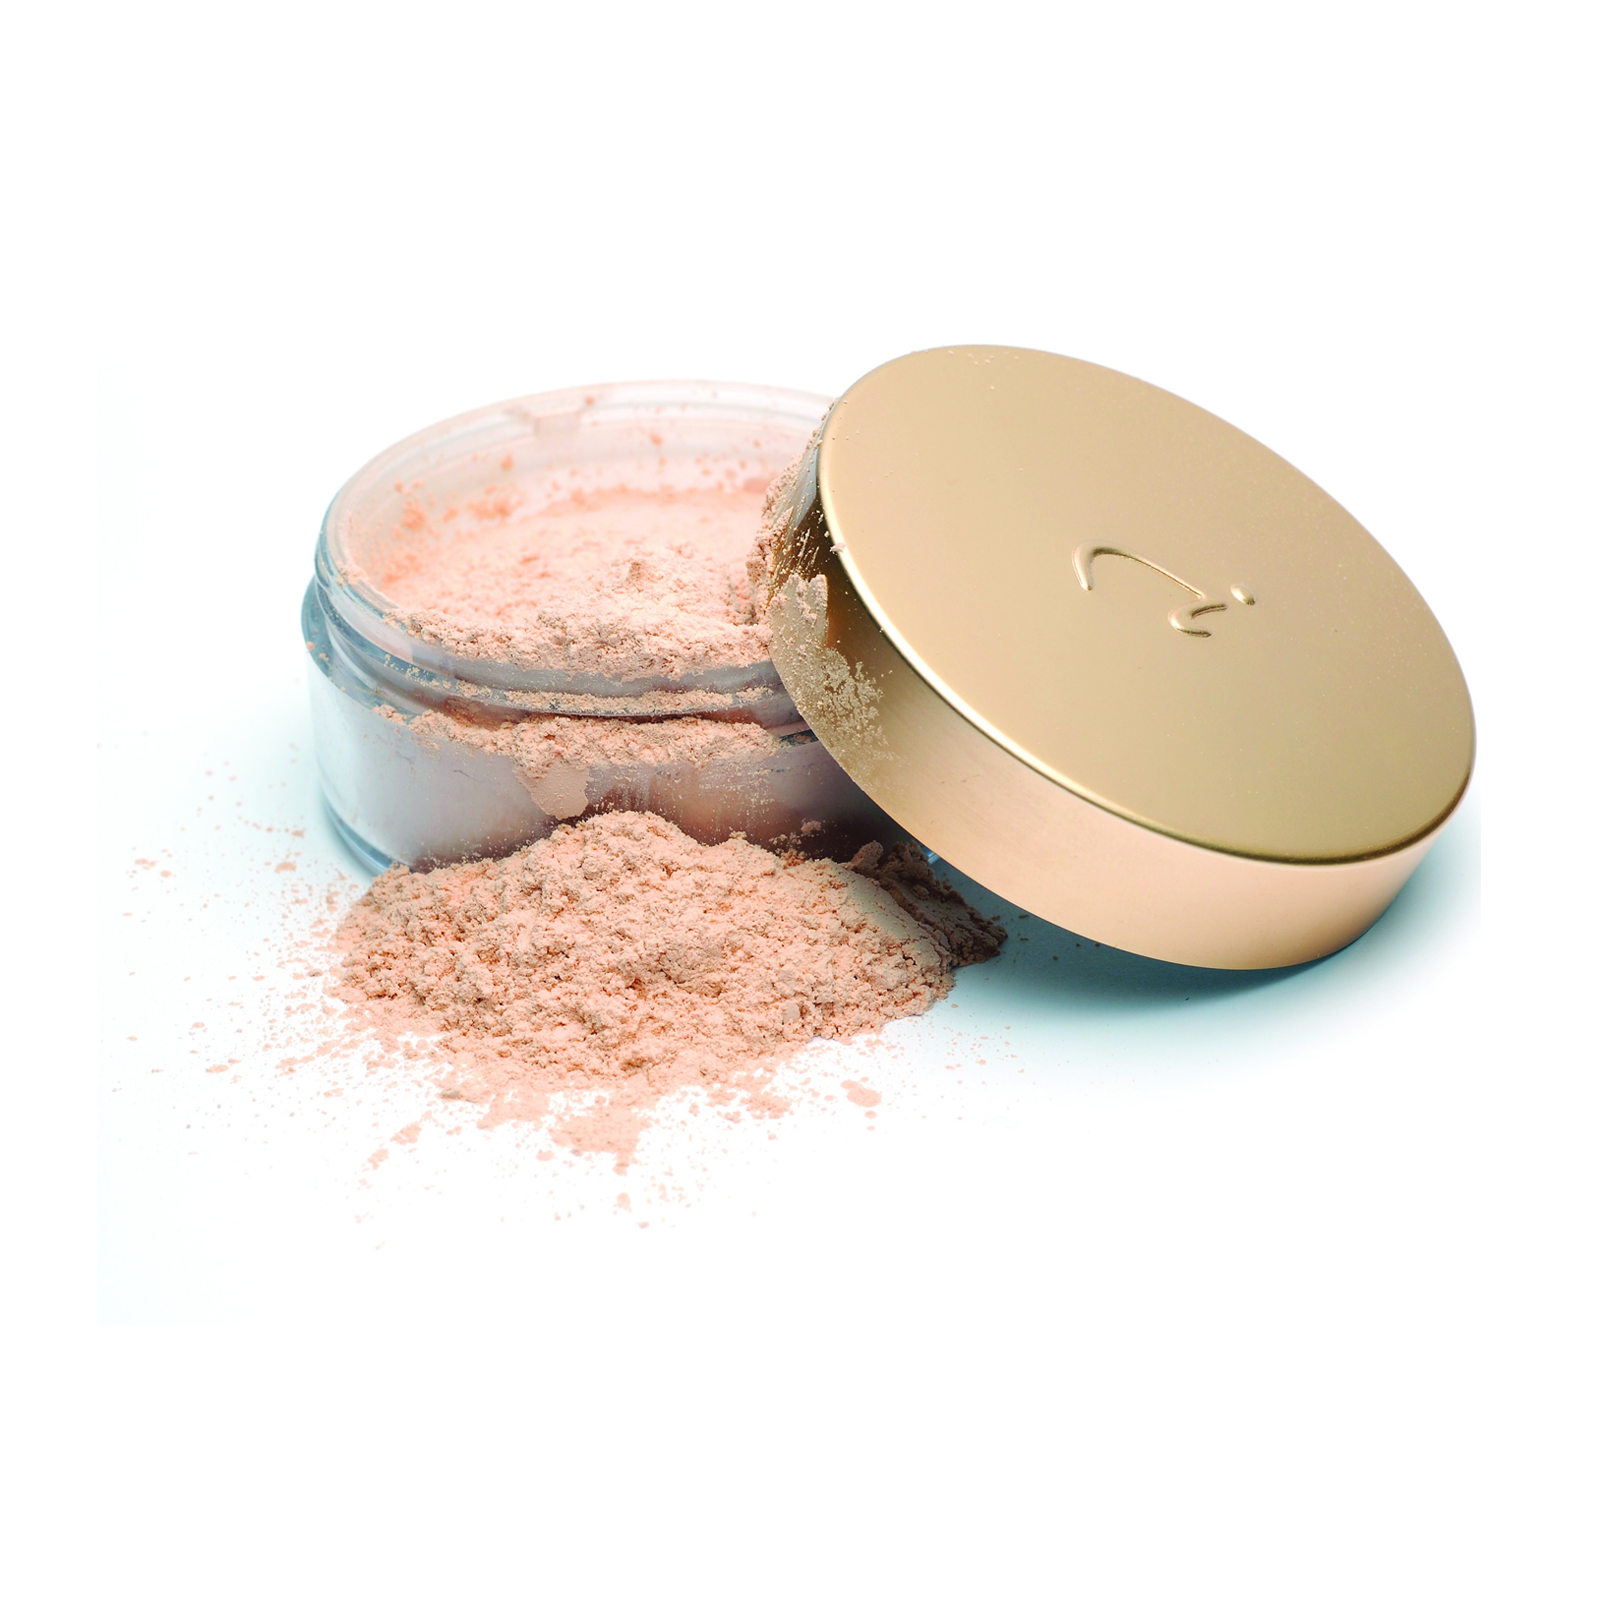 Jane_Iredale_Amazing_Base_Loose_Mineral_Powder_SPF_20_10_5g_1378130285